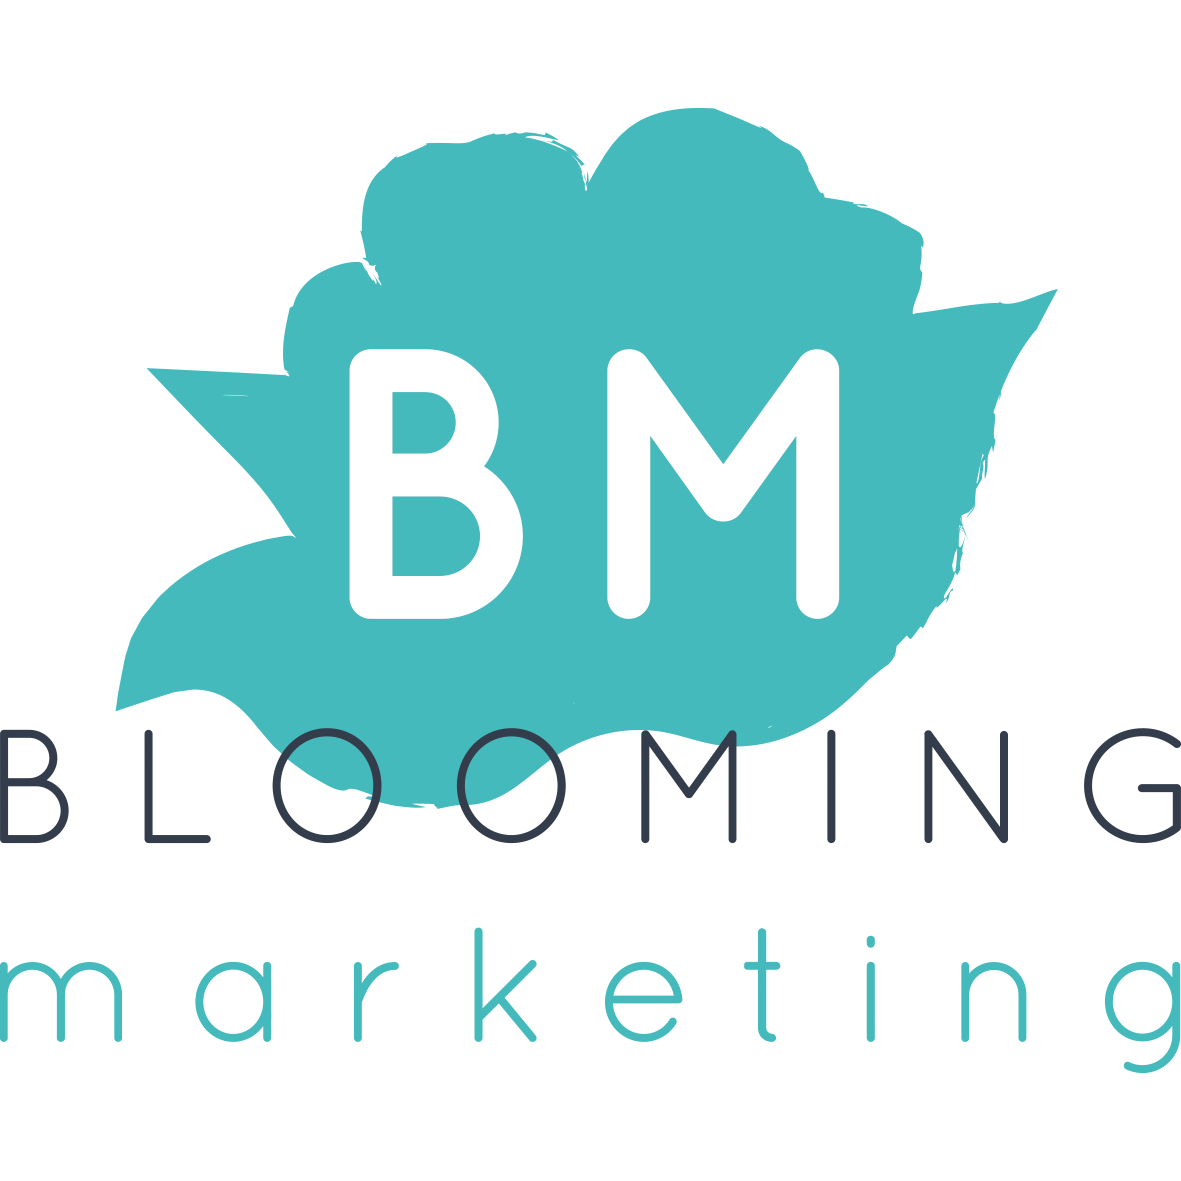 Blooming marketing